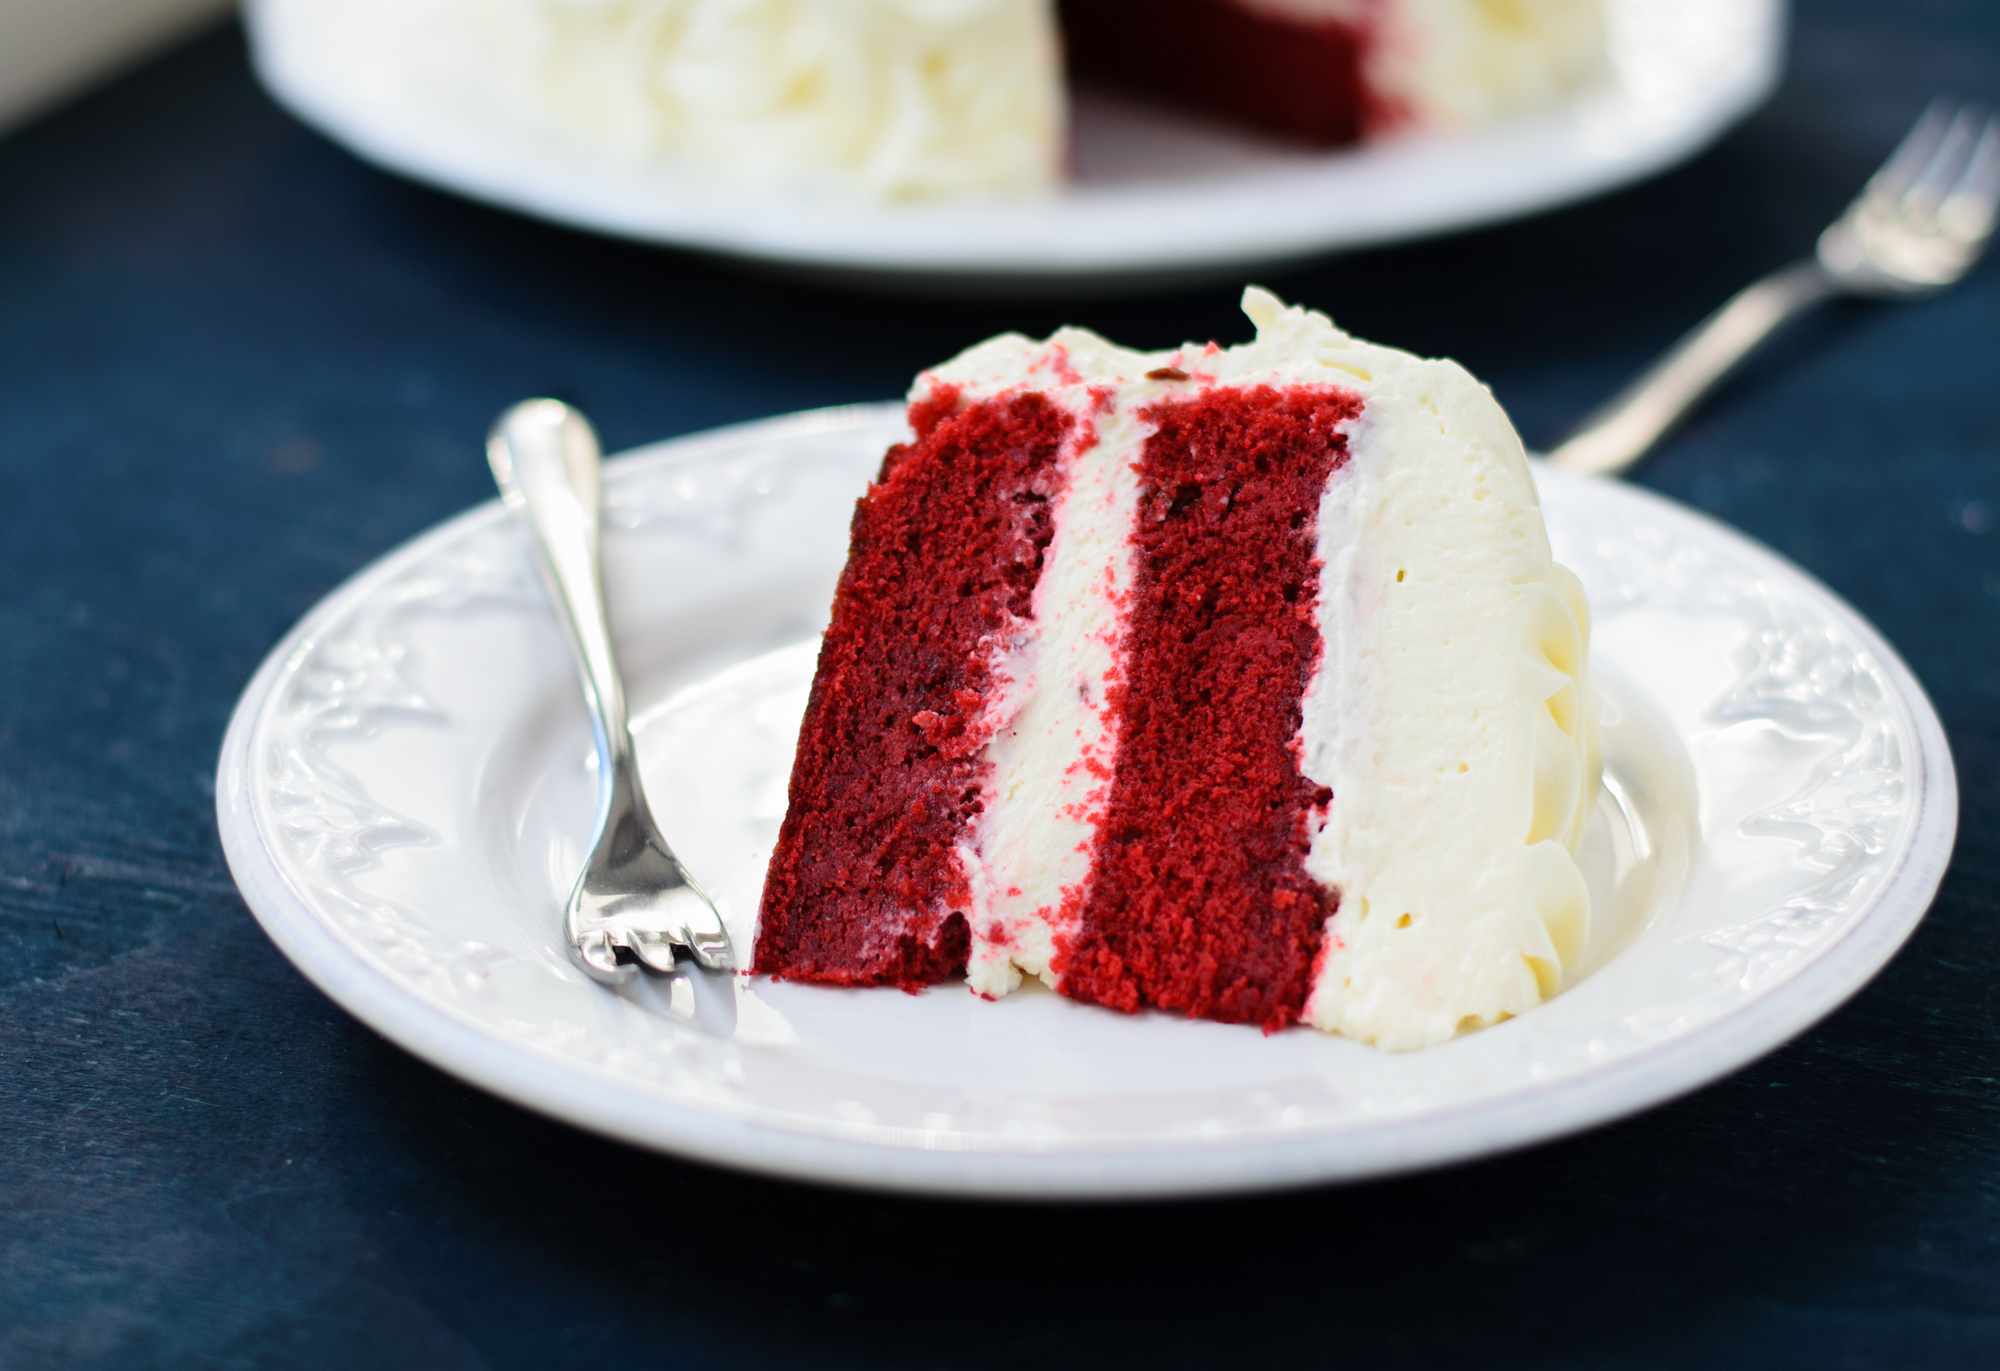 Red Velvet Cake with no Artificial Dye